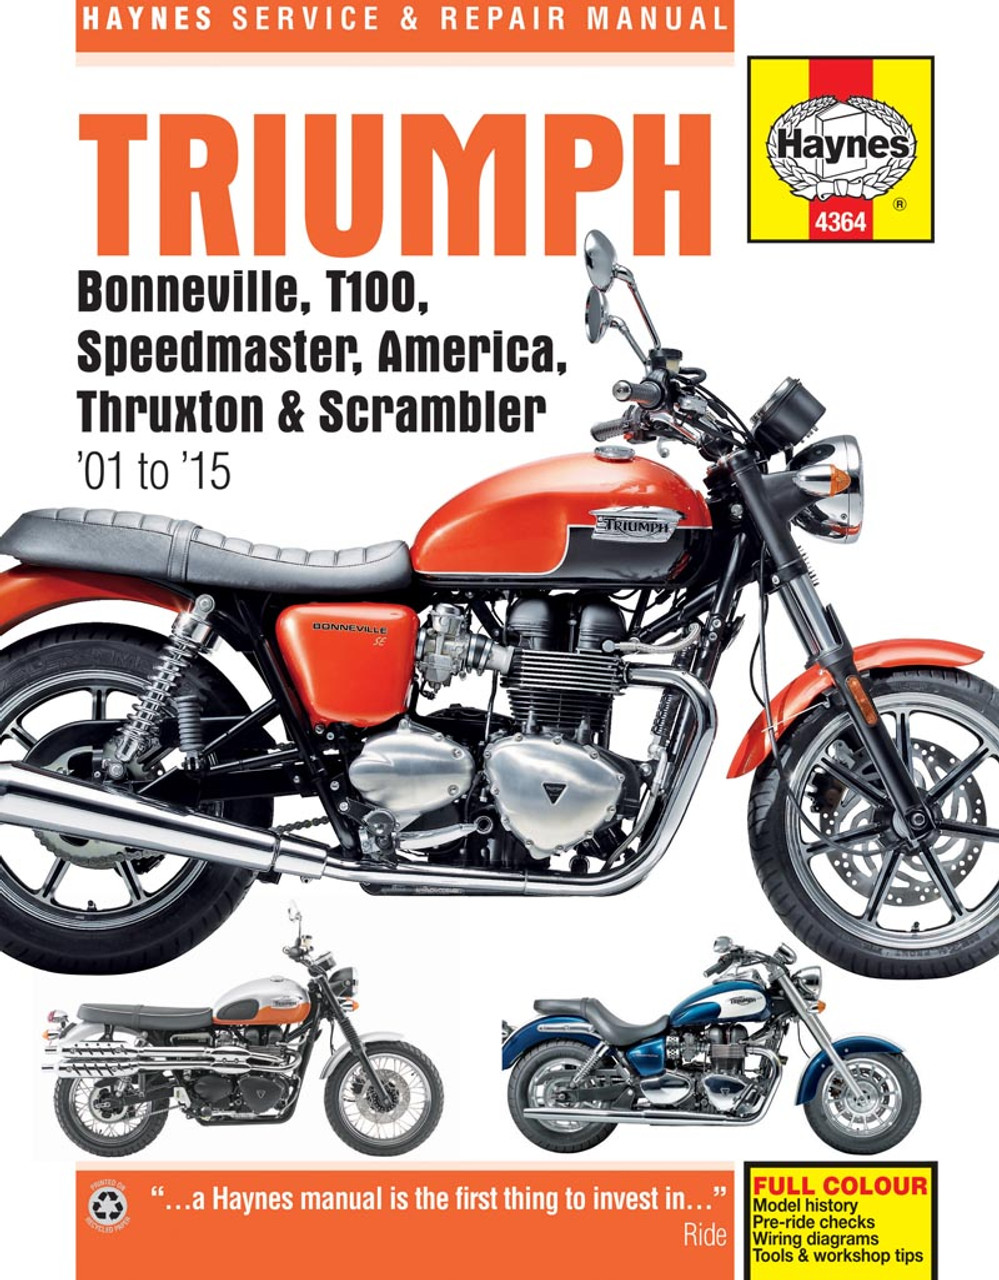 medium resolution of triumph bonneville t100 speedmaster america thruxton scrabmler workshop manual